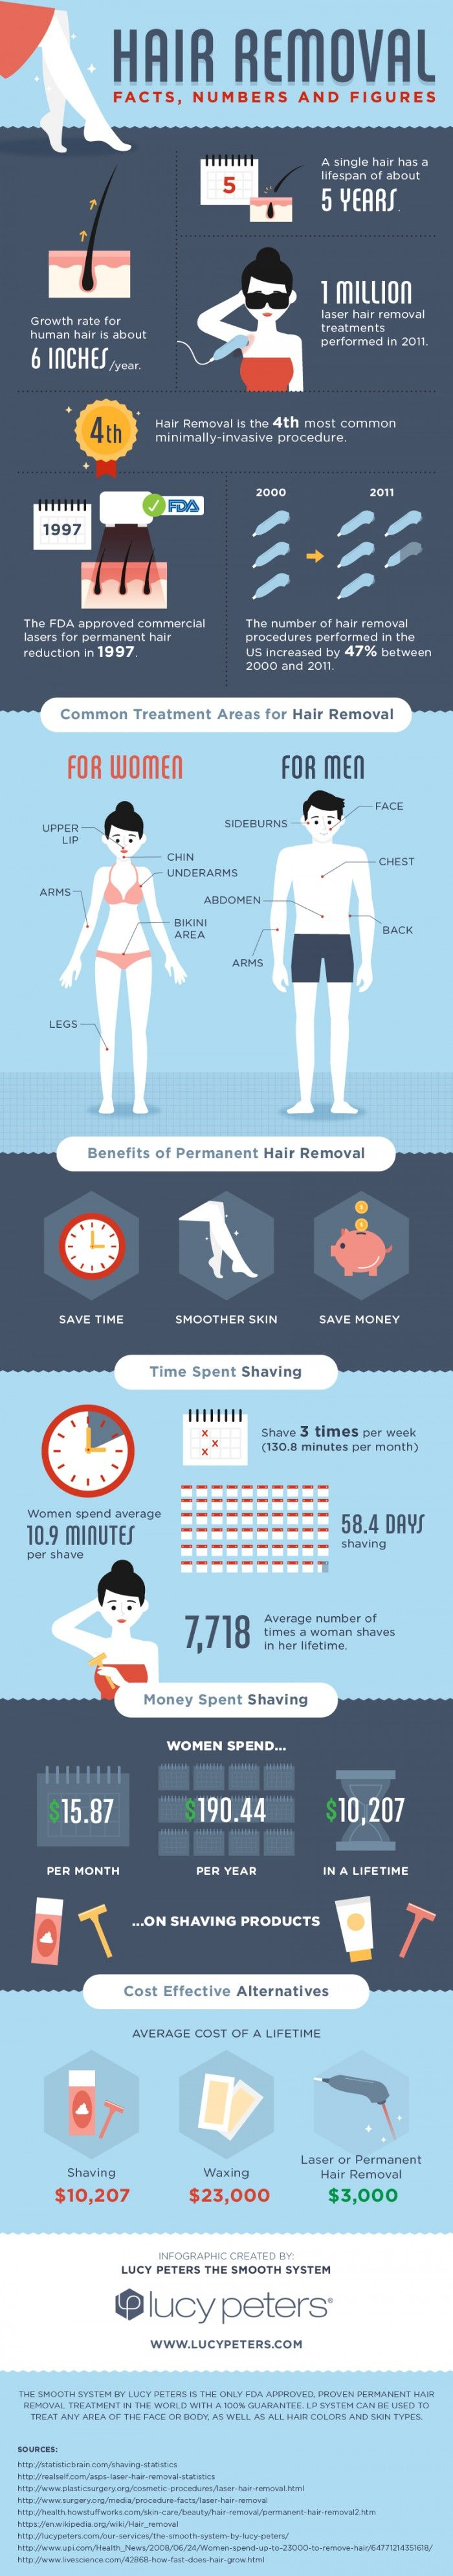 Hair-removal-facts-numbers-figures-infographic